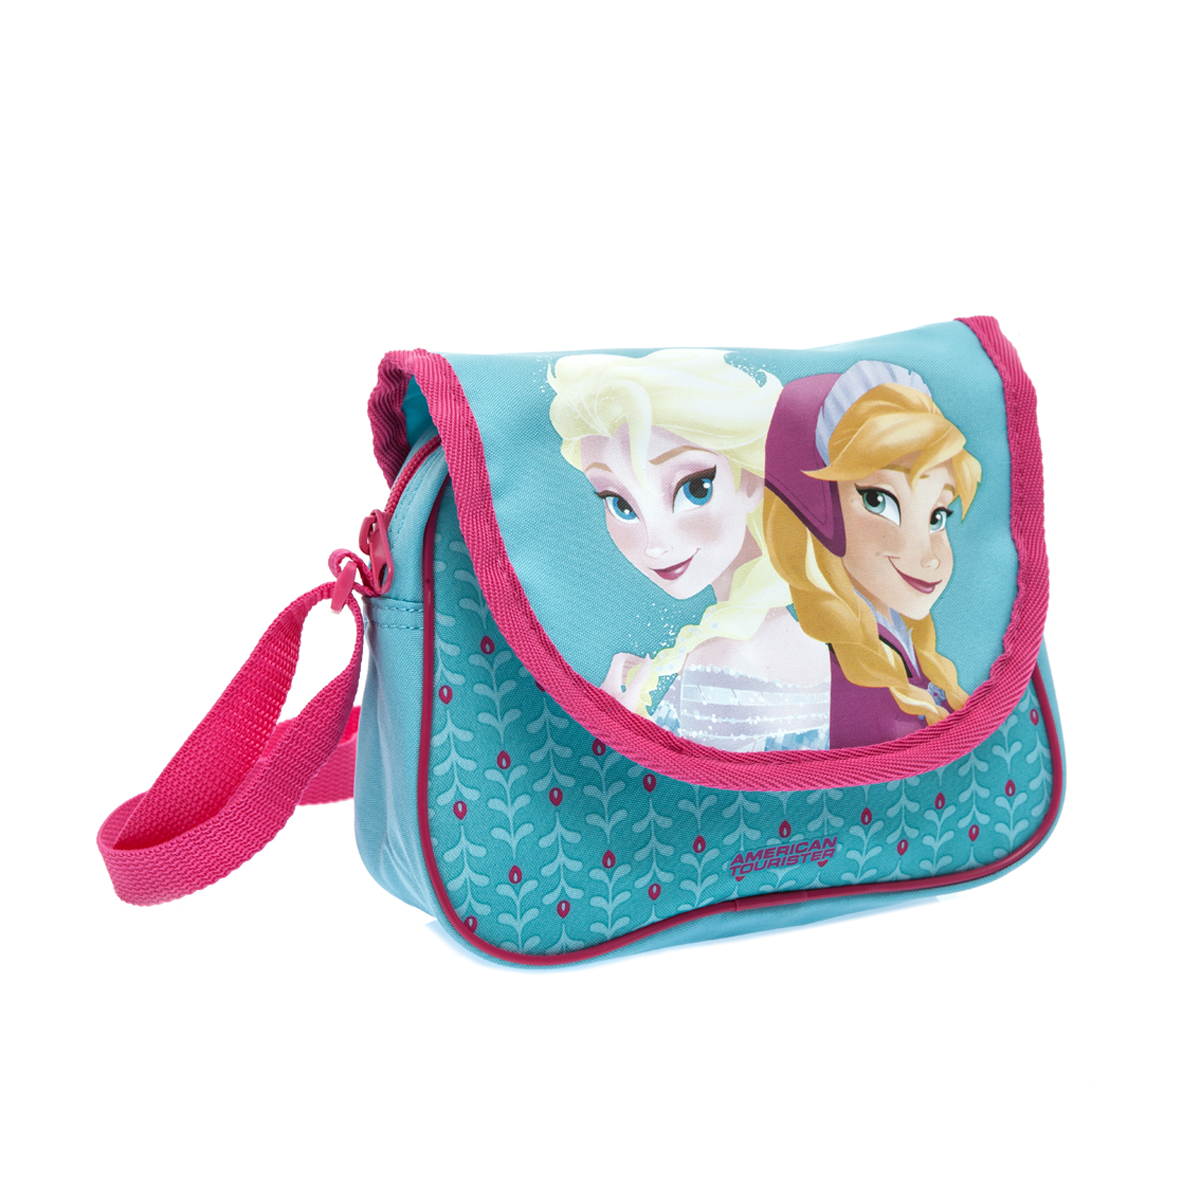 AMERICAN TOURISTER - Παιδική τσάντα FROZEN Disney by AMERICAN TOURISTER γαλάζια